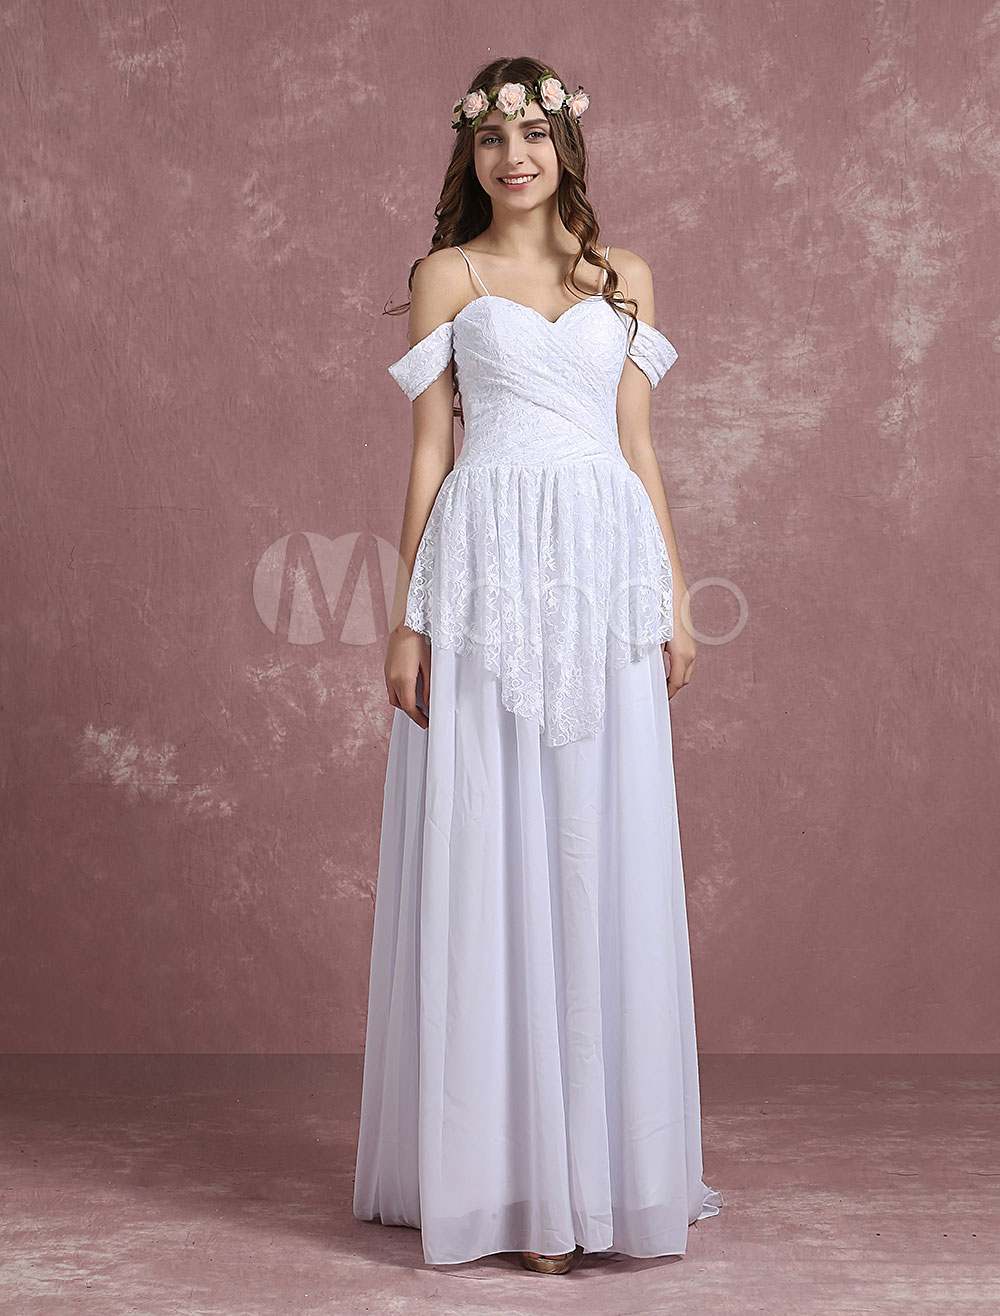 f7c6b6cfb12 ... Lace Chiffon Bridal Gown Off The Shoulder Sweetheart Spaghetti Straps.  12. 45%OFF. Color White